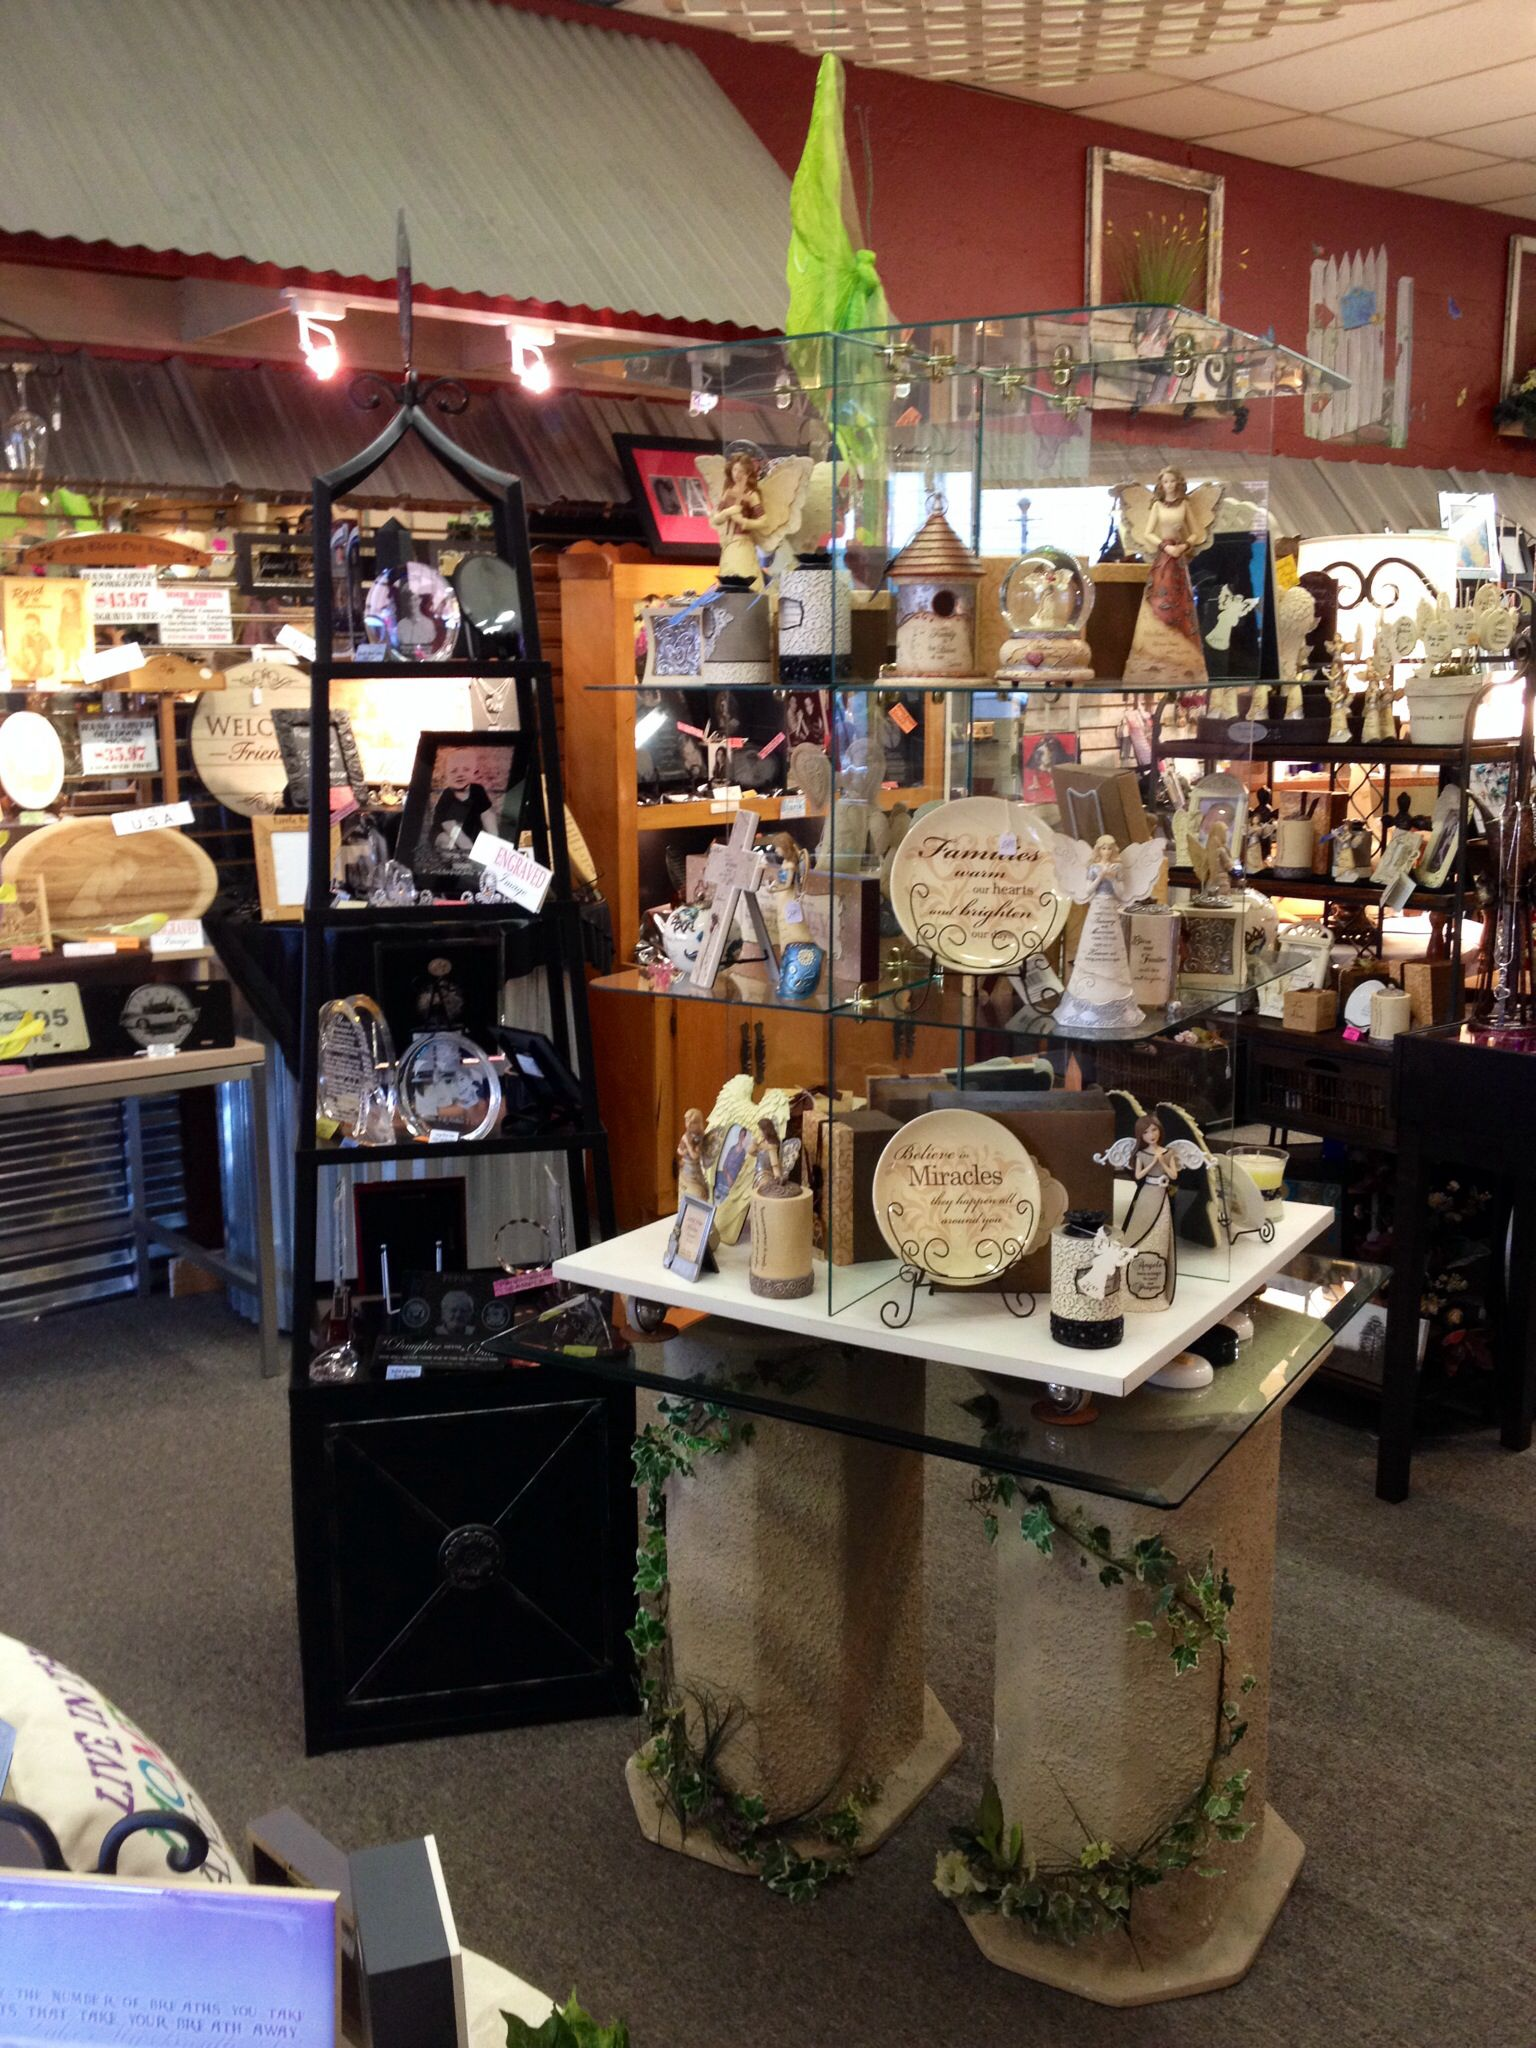 Visual Merchandising and gift shop retail displays